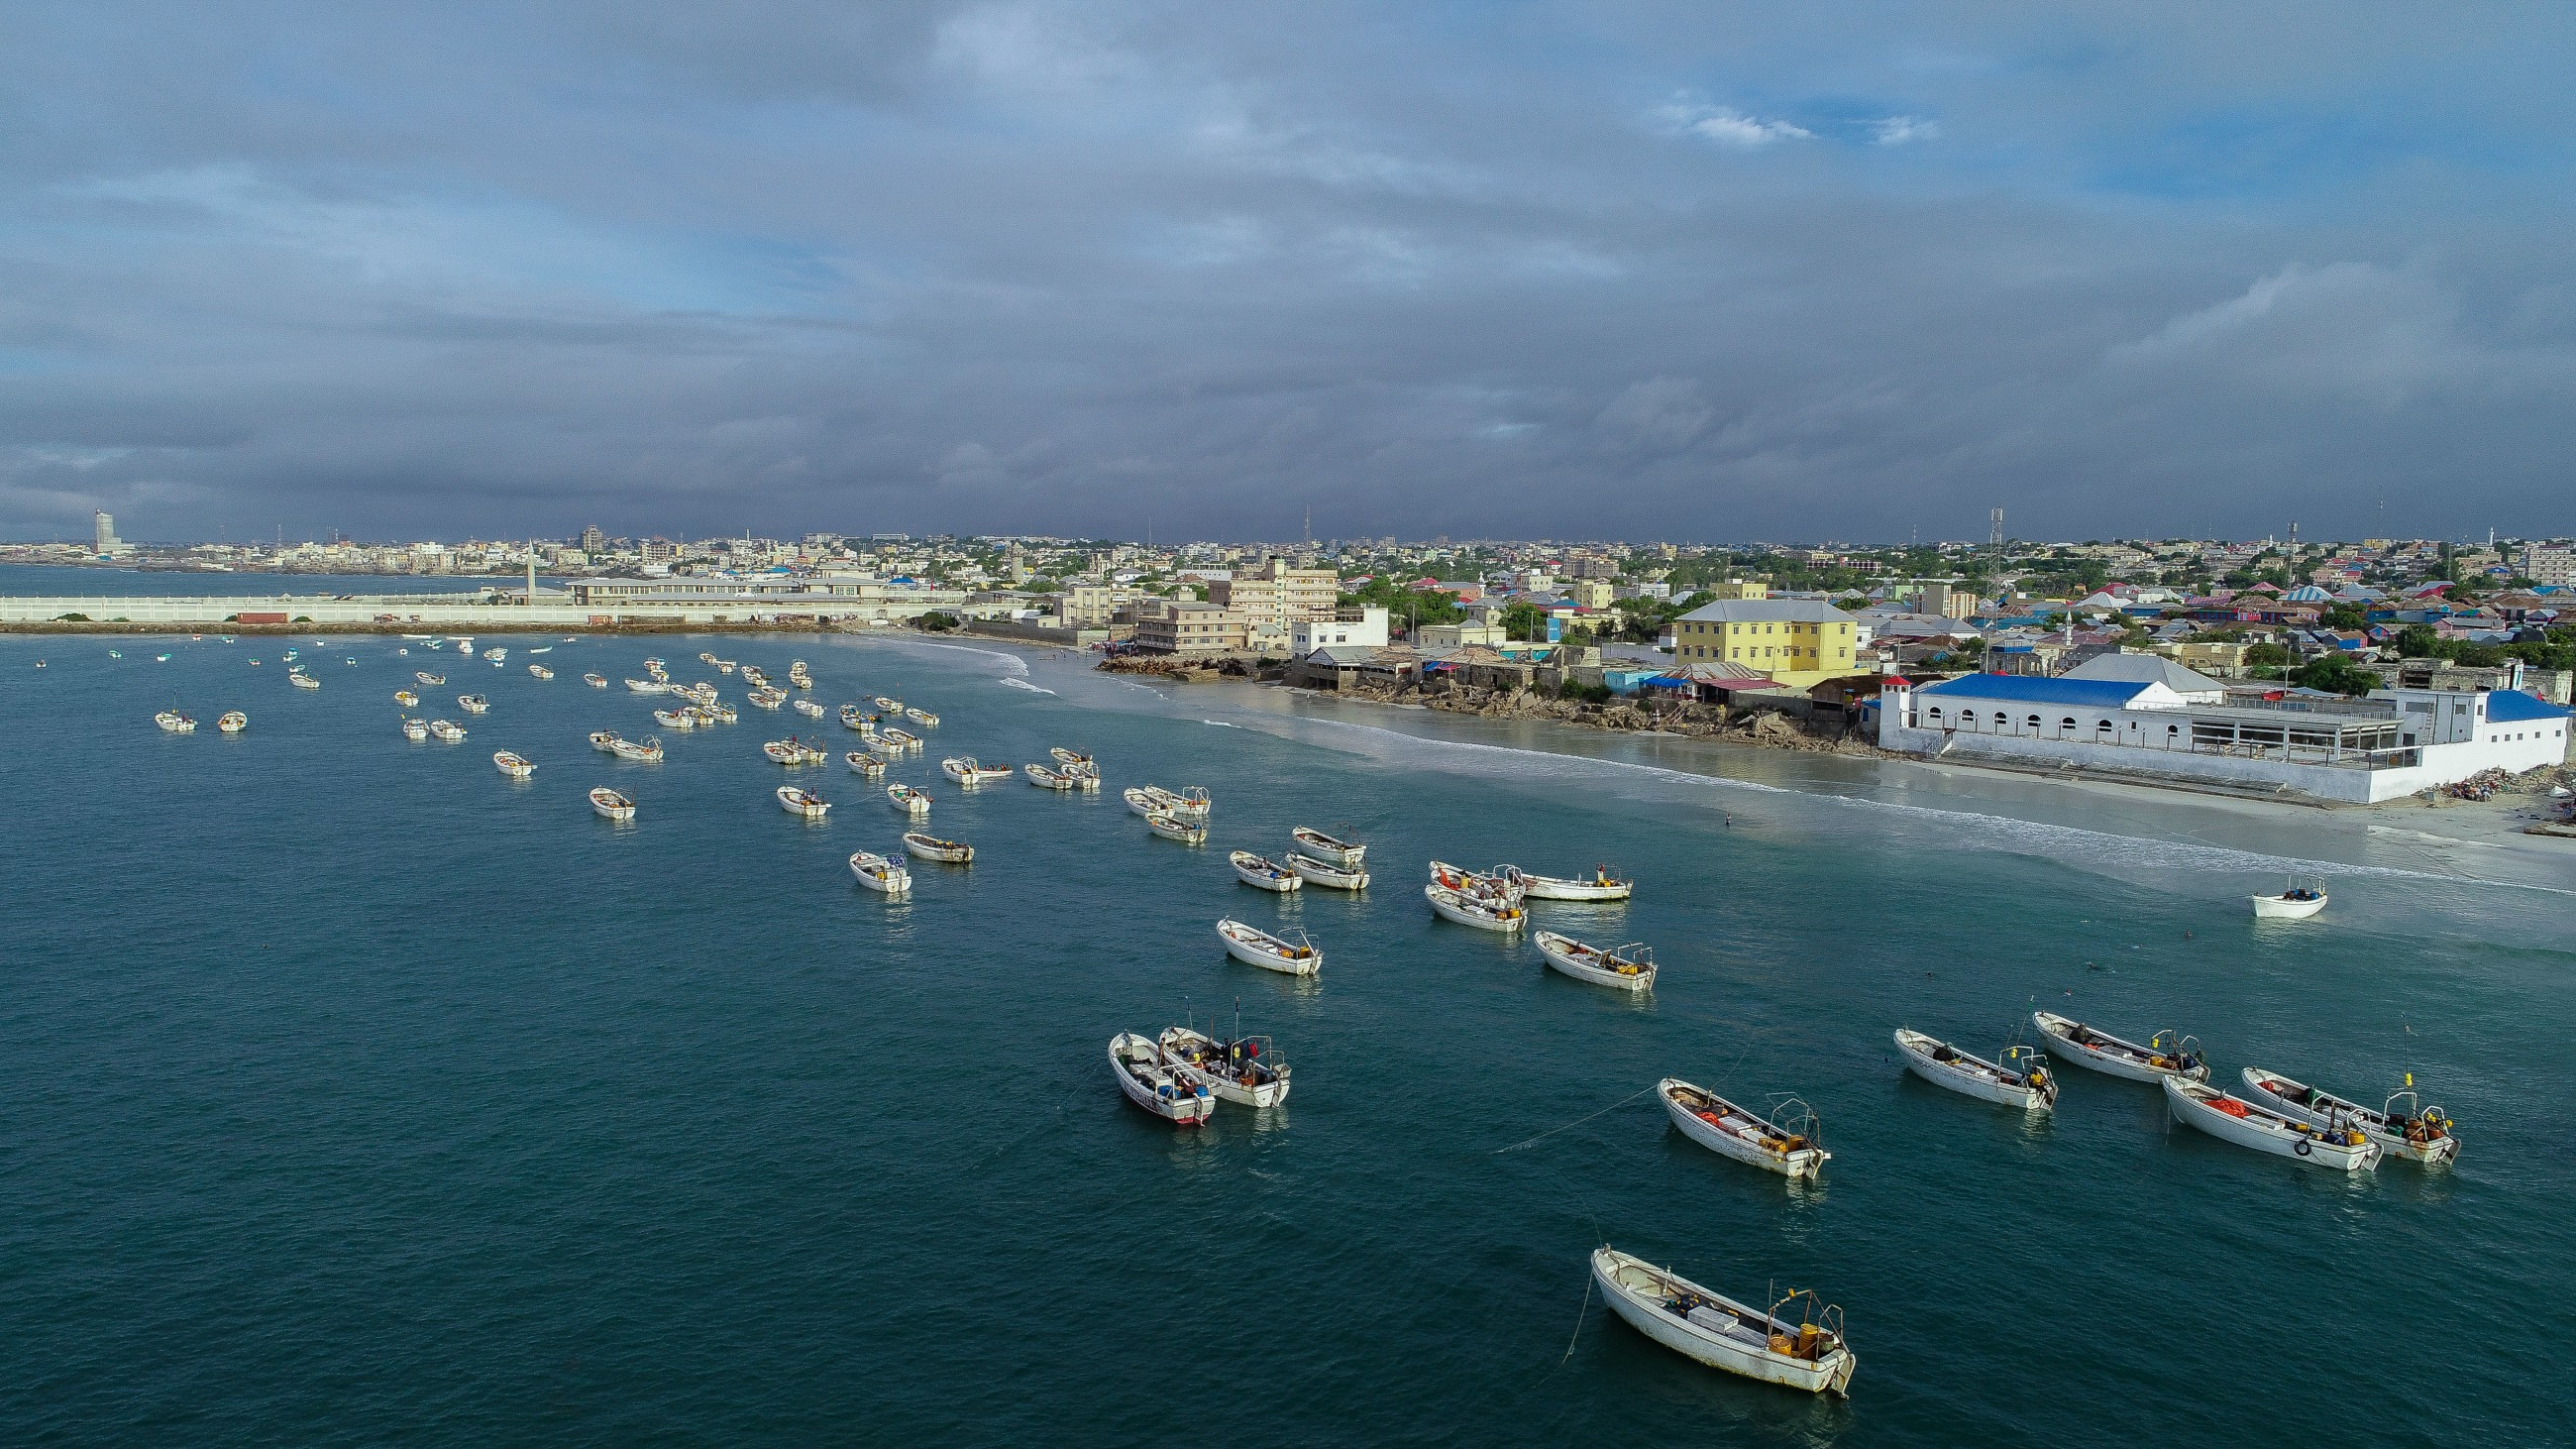 My Country Sri Lanka Essay English Aerial View Of The Indian Ocean Coastline In Mogadishu Credit  Foresightgeel Essay Vs Research Paper also Essays On Health Care Reform Photo Essay Sustainable Economic Growth In Somalias Fisheries Essay About English Language